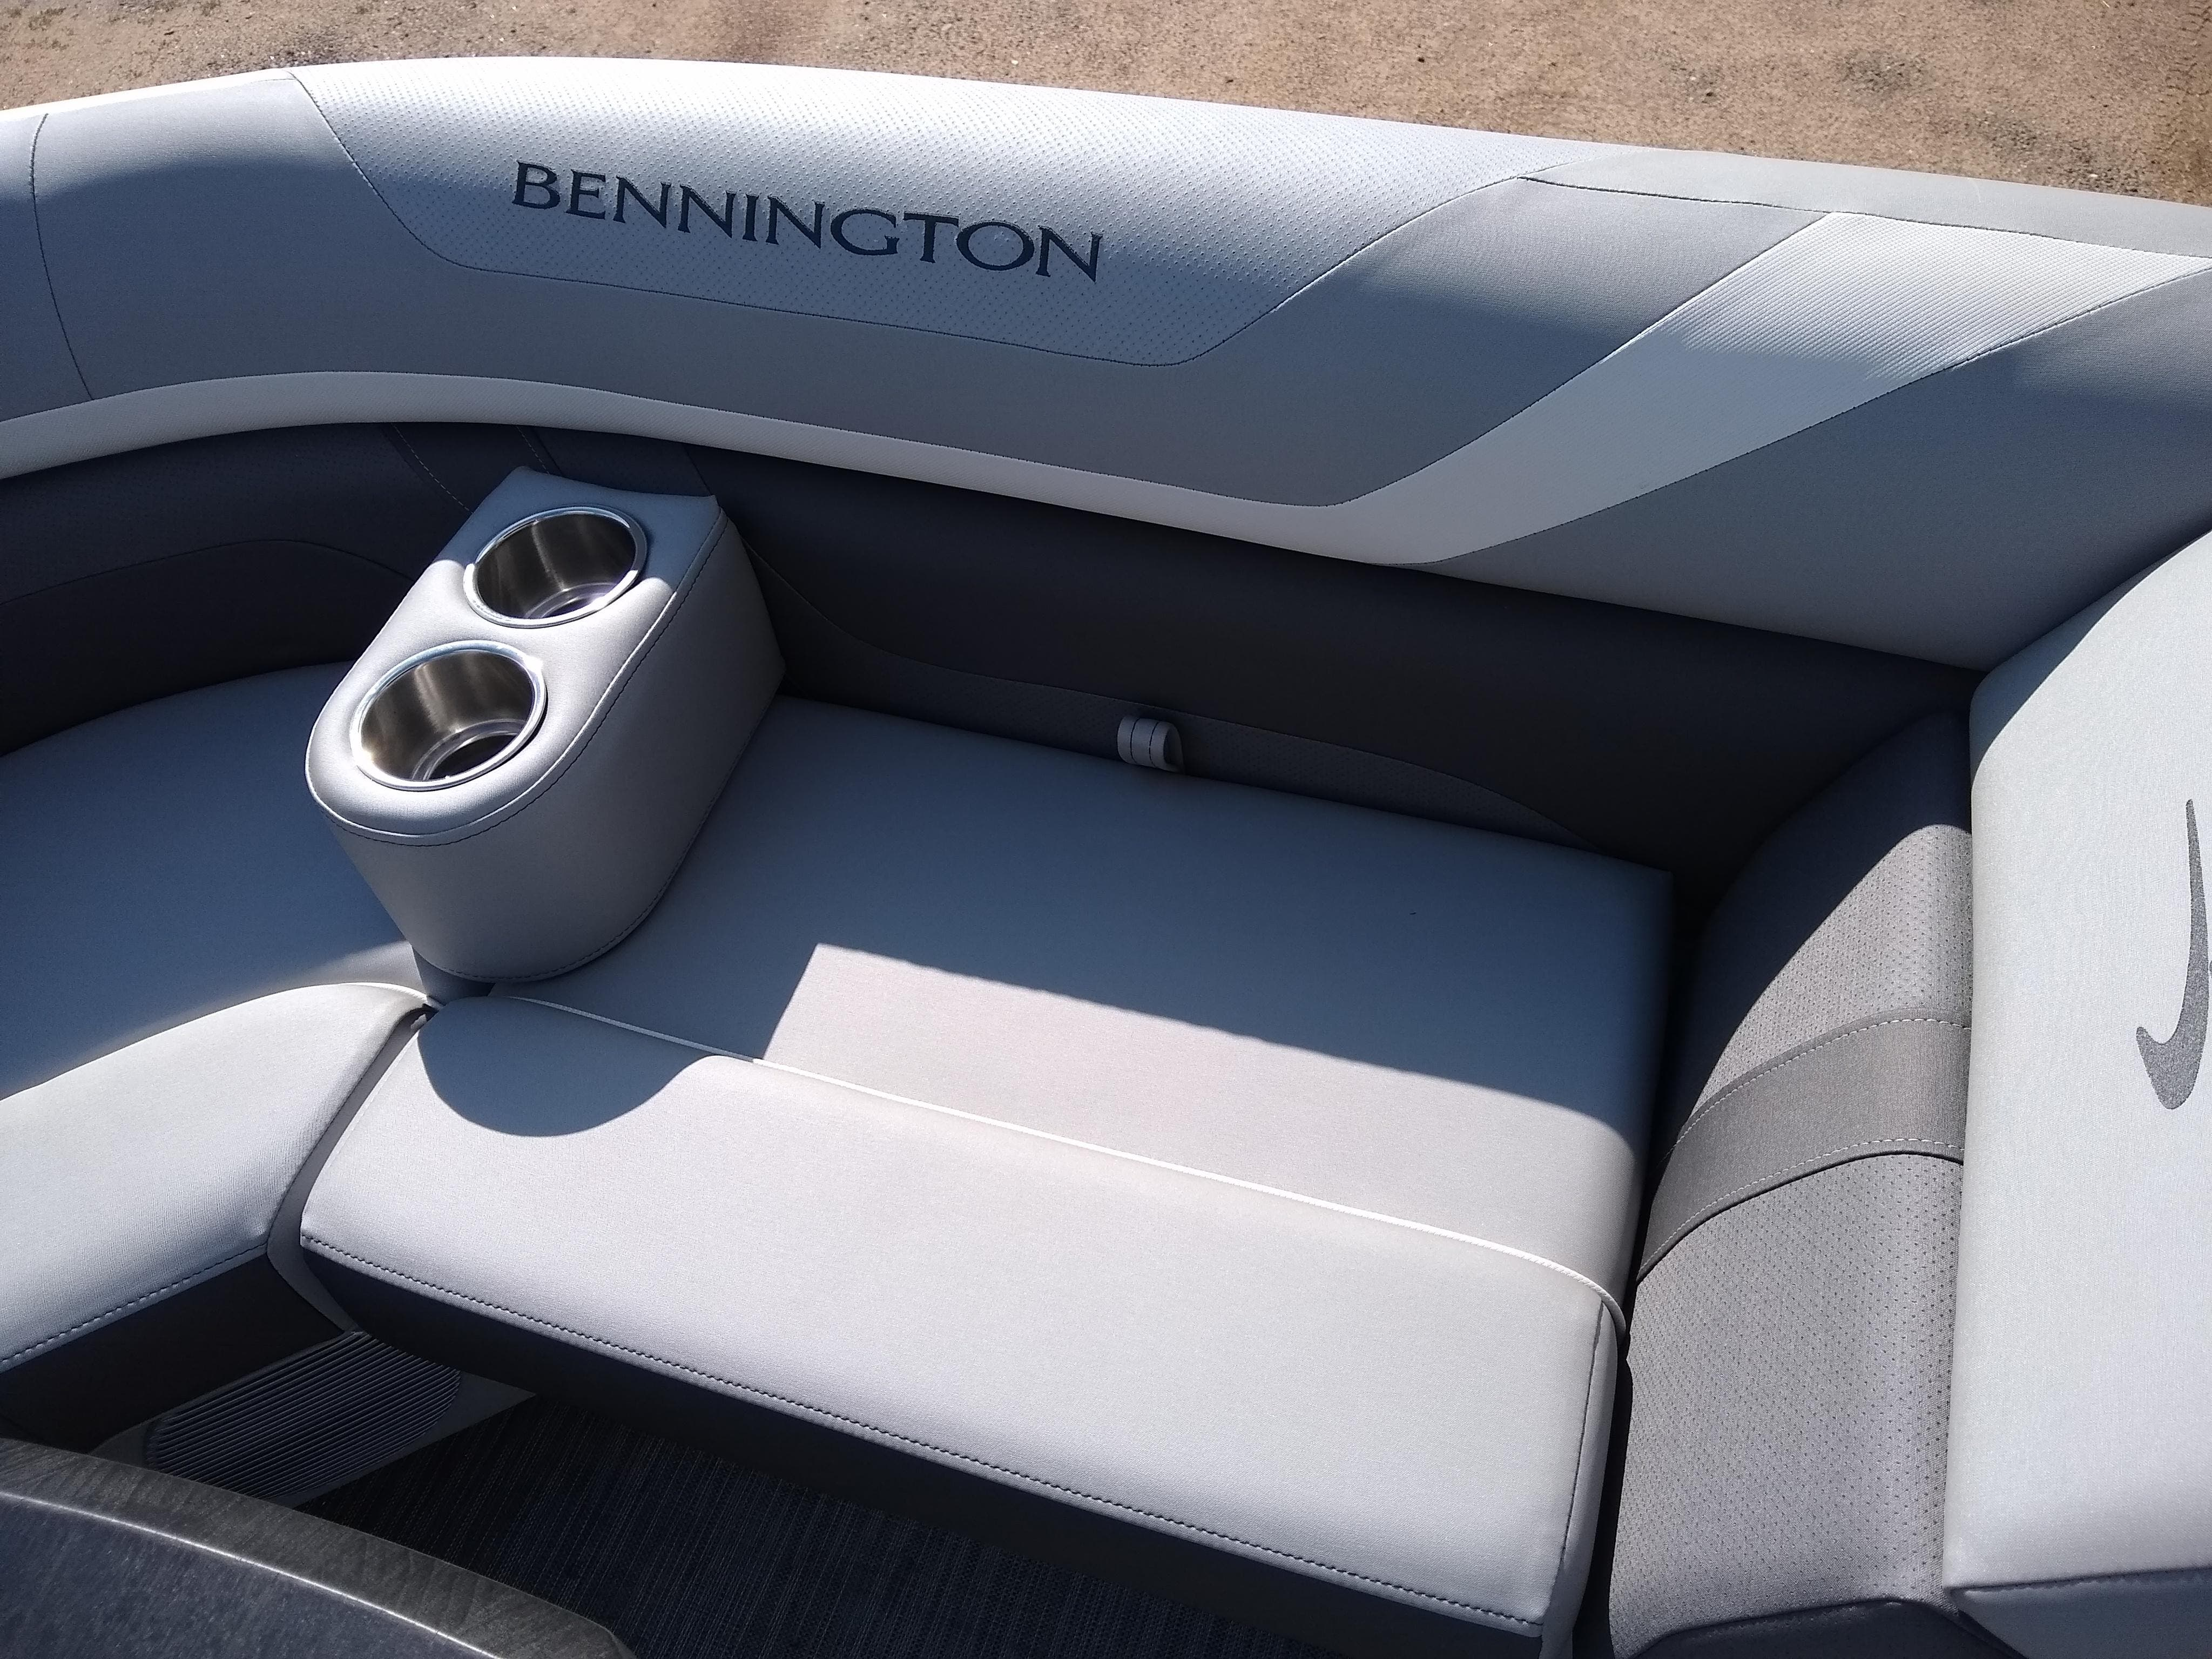 2020 Bennington boat for sale, model of the boat is SX Series 22 & Image # 6 of 14